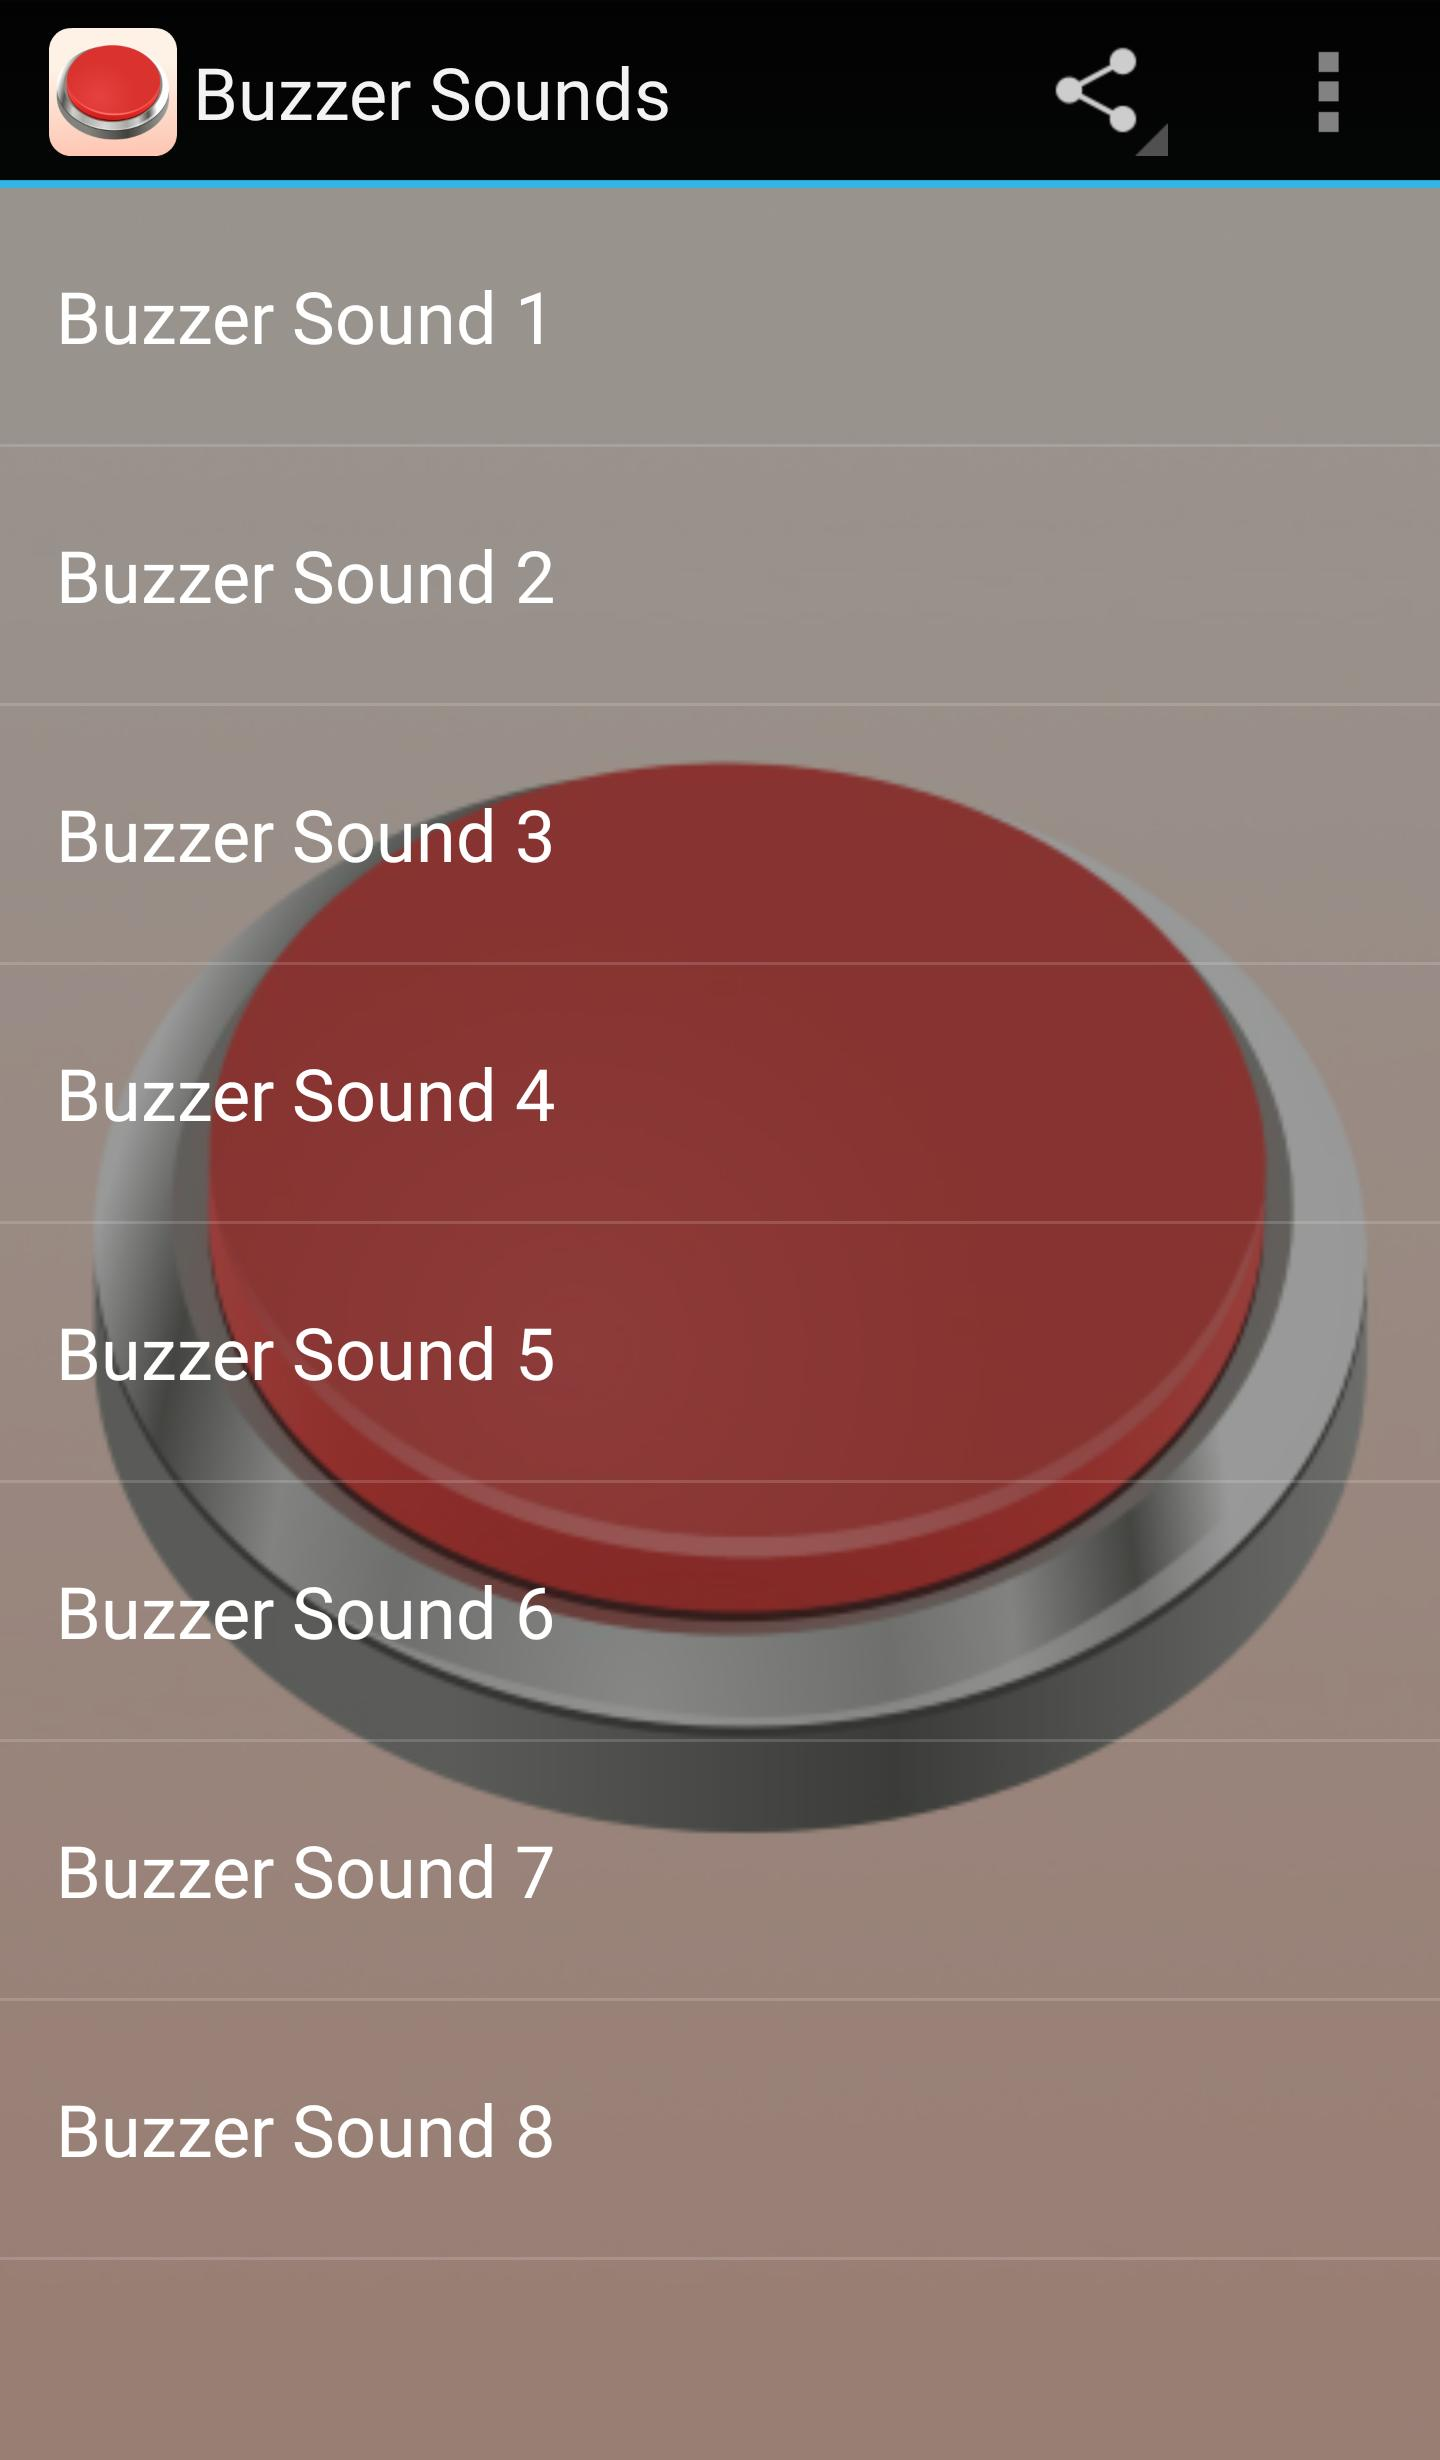 Buzzer Sounds for Android - APK Download